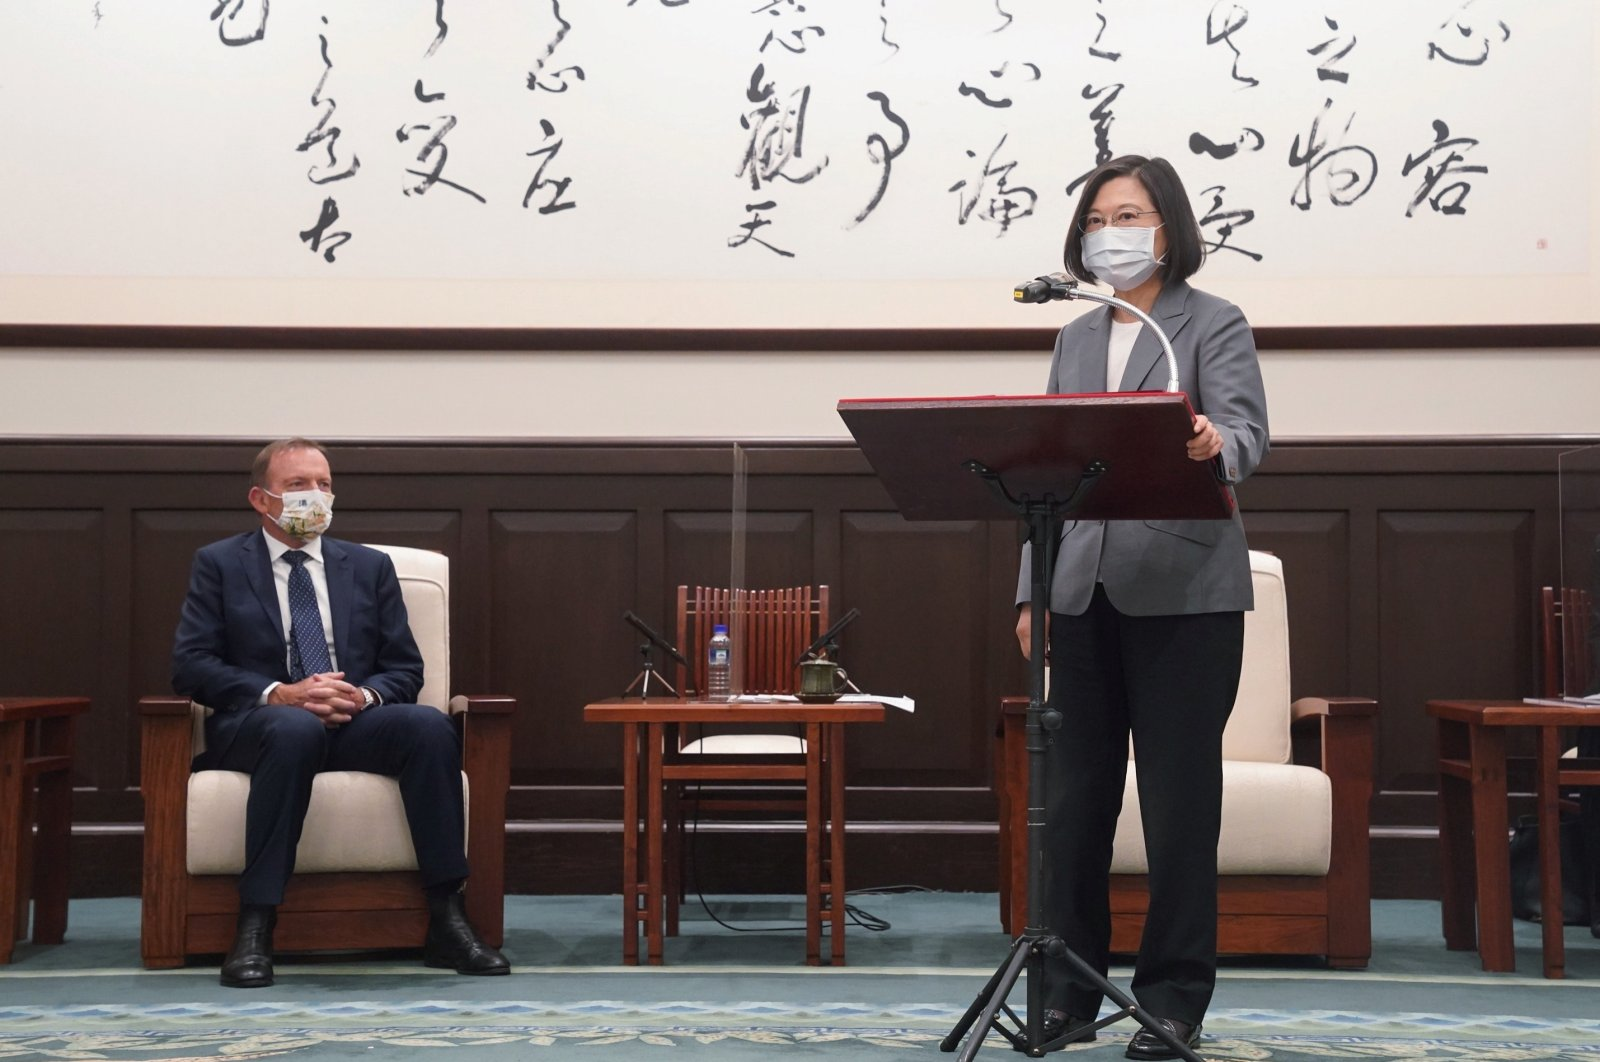 Taiwan's President Tsai Ing-wen speaks next to the former Australian Prime Minister Tony Abbott during their meeting in Taipei, Taiwan, Oct. 7, 2021. (Reuters Photo)